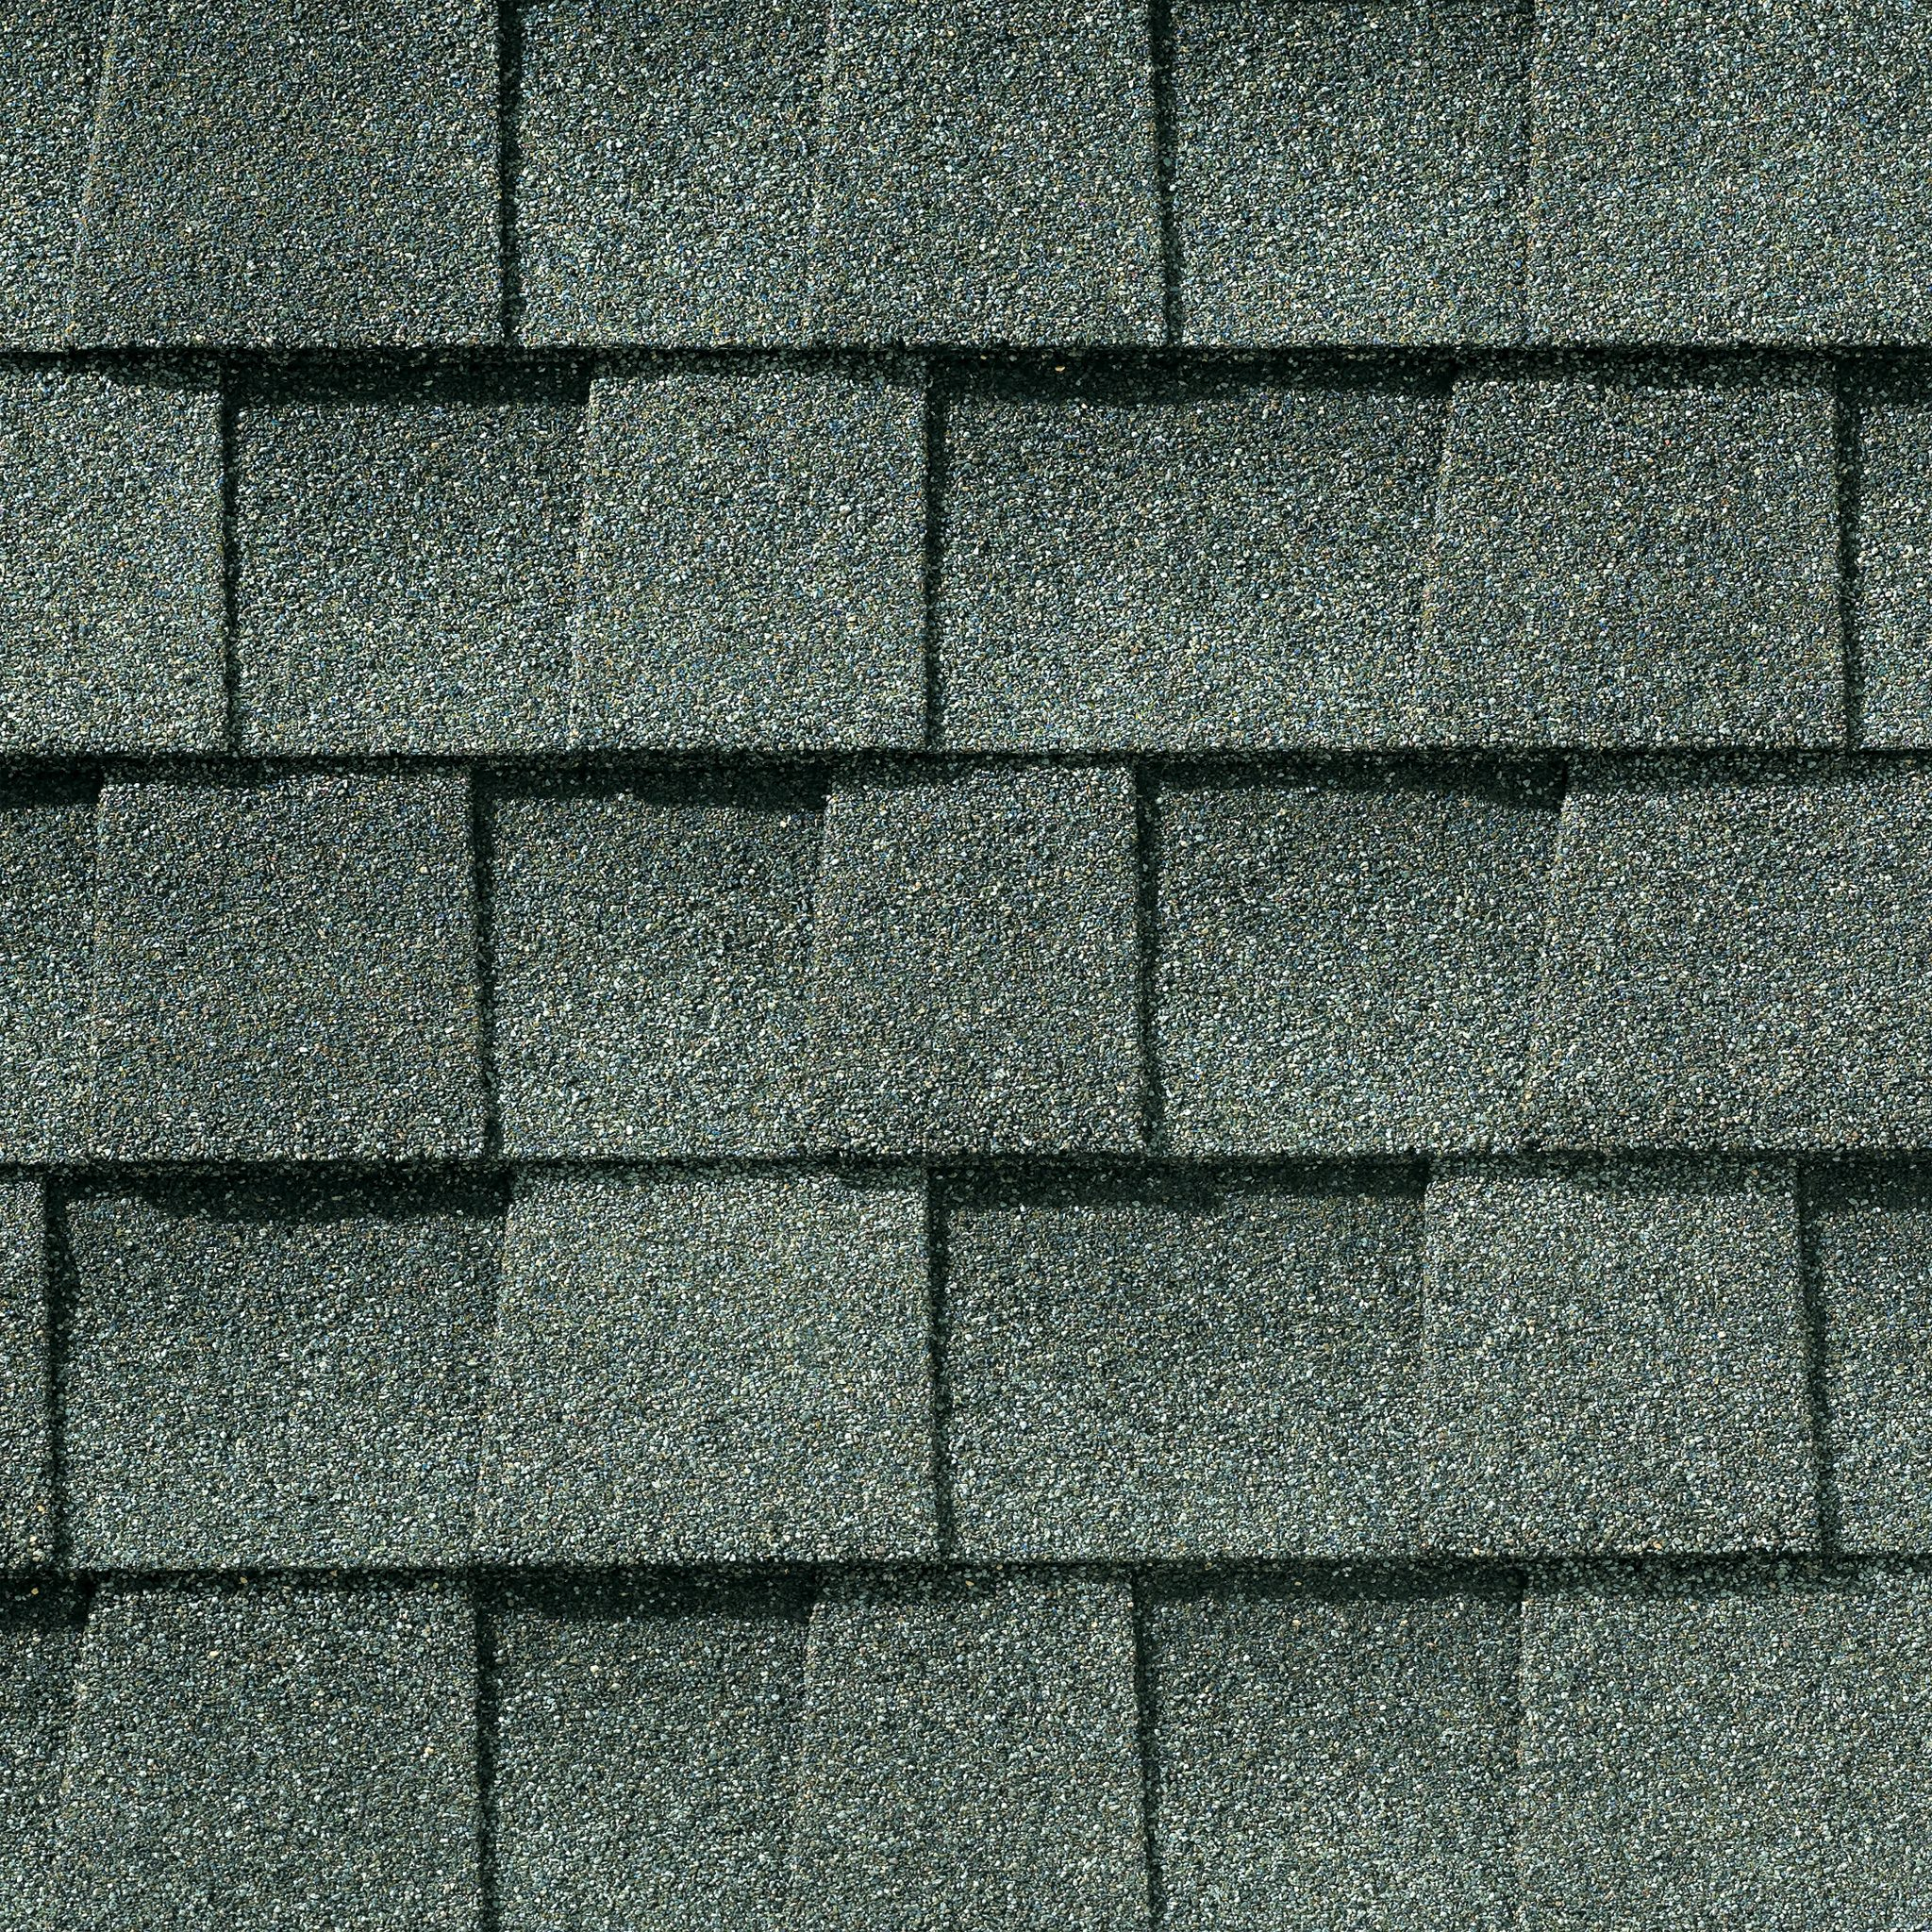 Close up photo of GAF's Timberline Natural Shadow shingle swatch